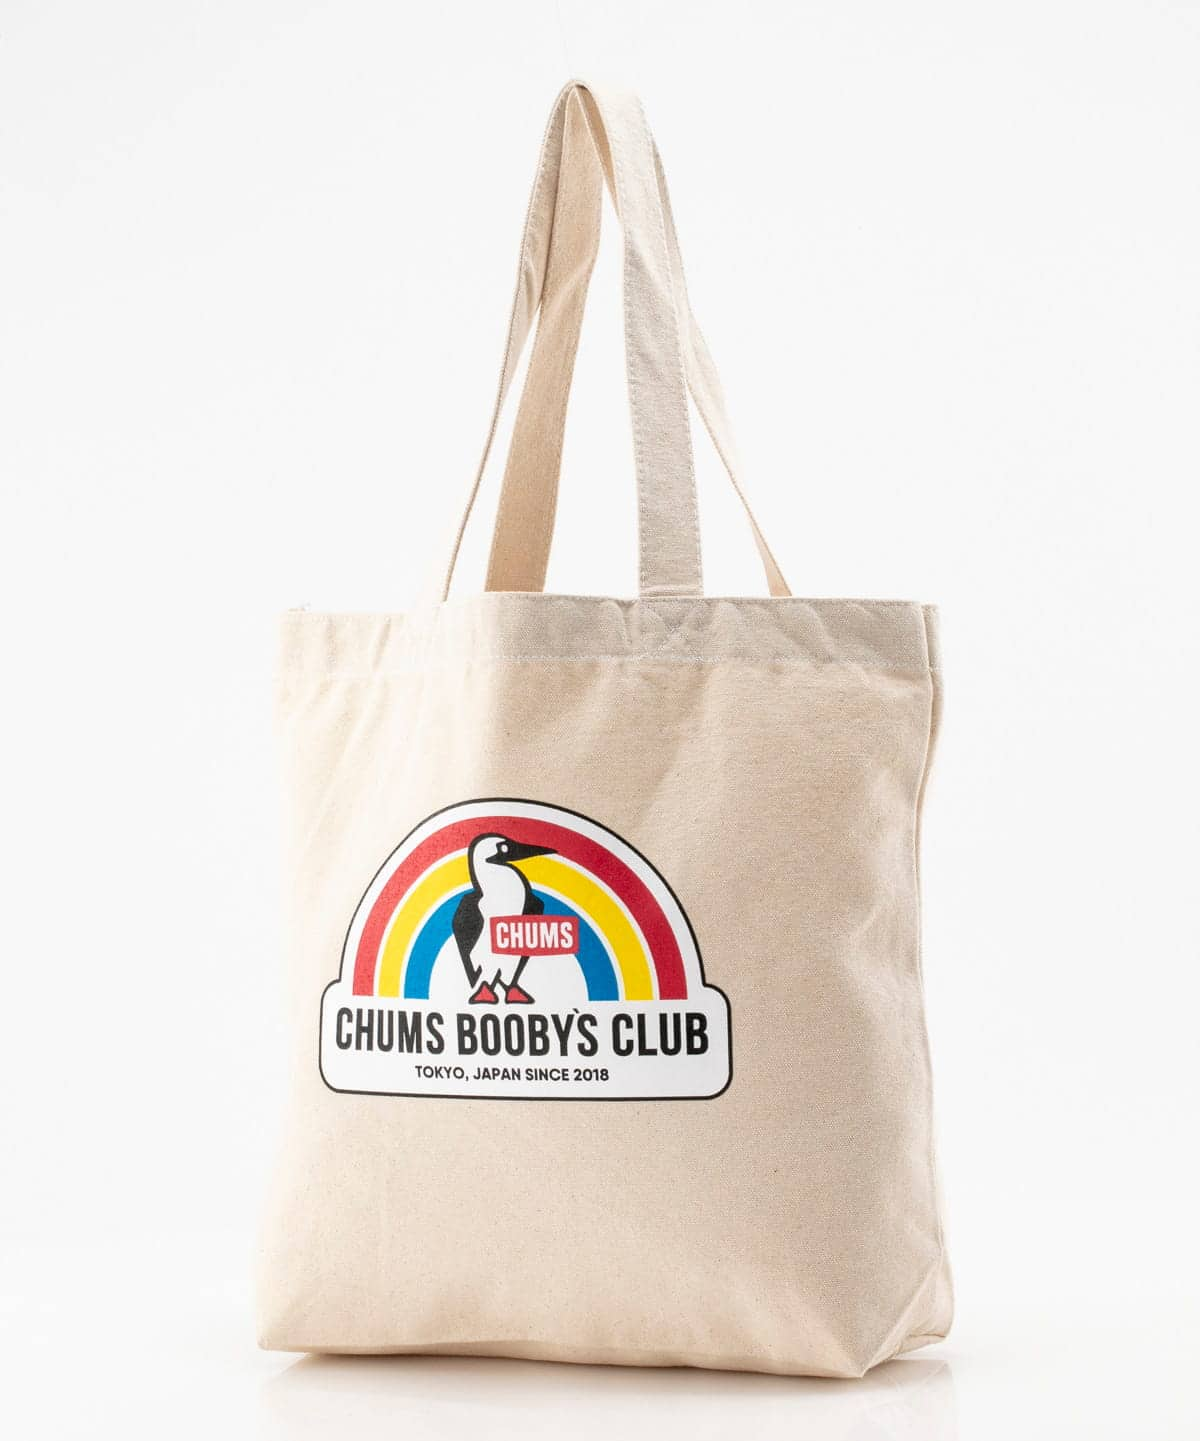 CHUMS Booby's Club Tote Bag(チャムスブービーズクラブトートバッグ)